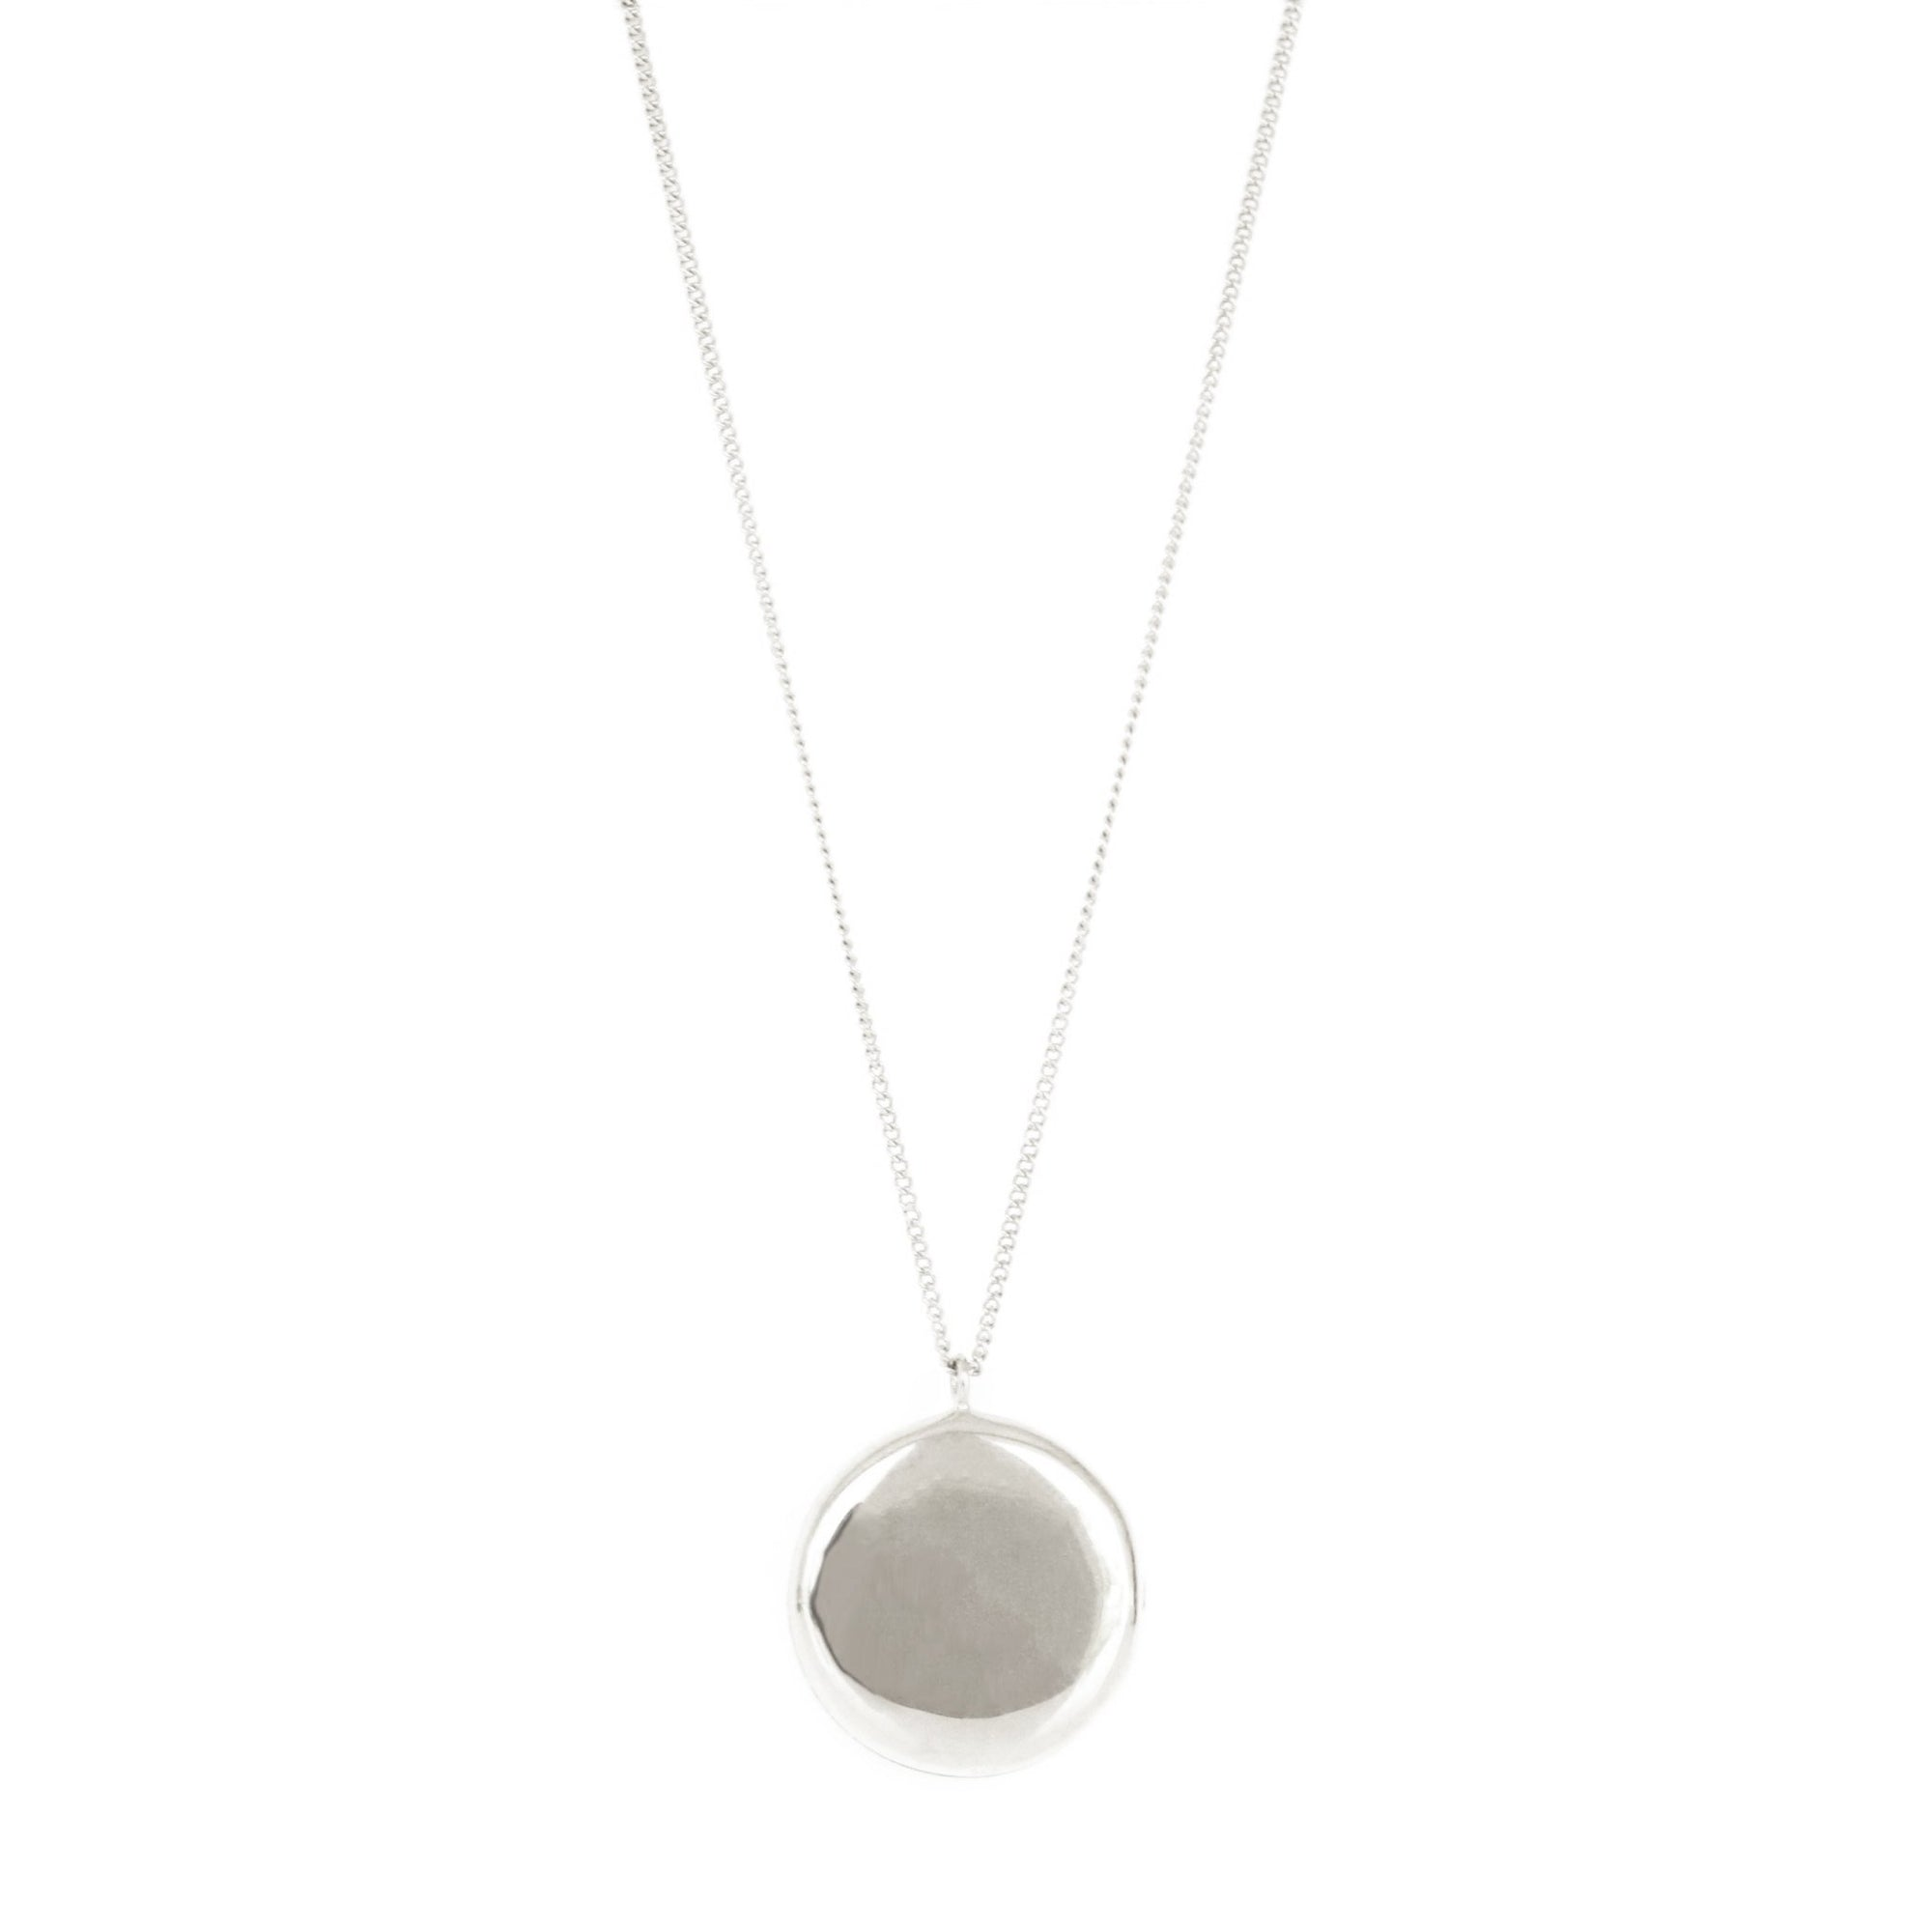 PREORDER FRAICHE INSPIRE LOCKET NECKLACE - SILVER - SO PRETTY CARA COTTER